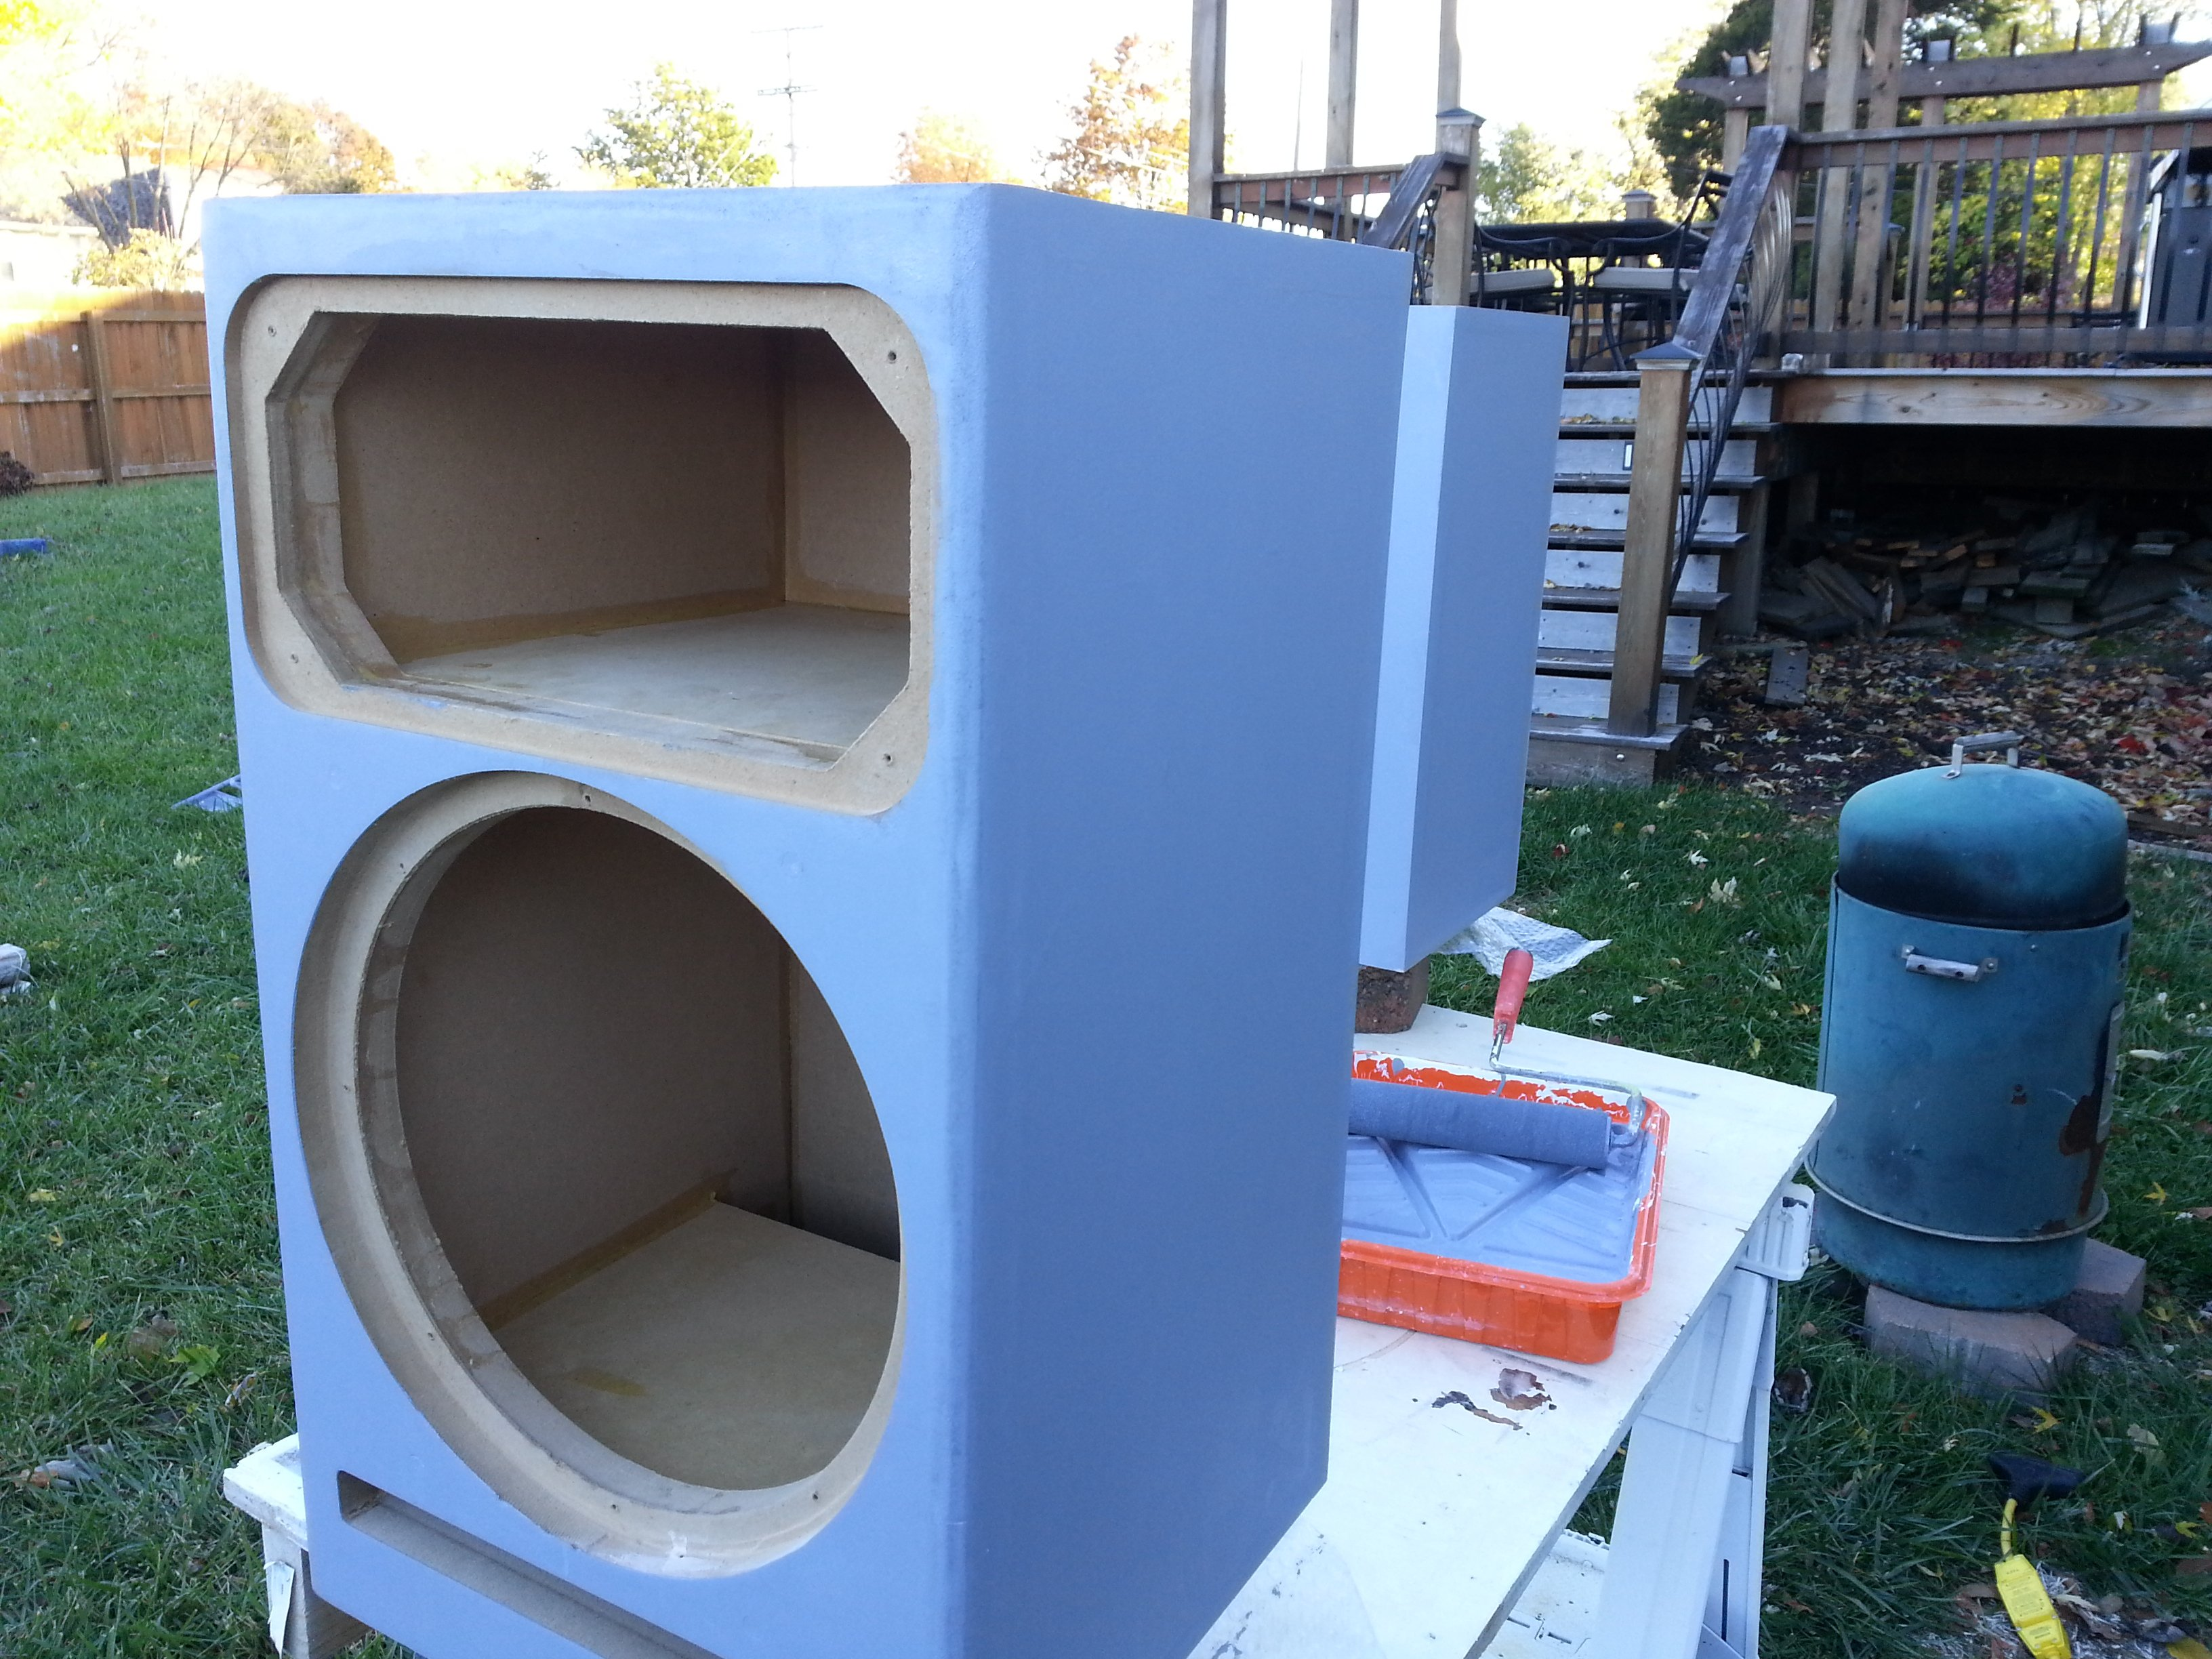 2 speakers and 2 subs = 1 gal. of Zinnser B-I-N sealer. I rolled the sealer on the inside of the cabs too.